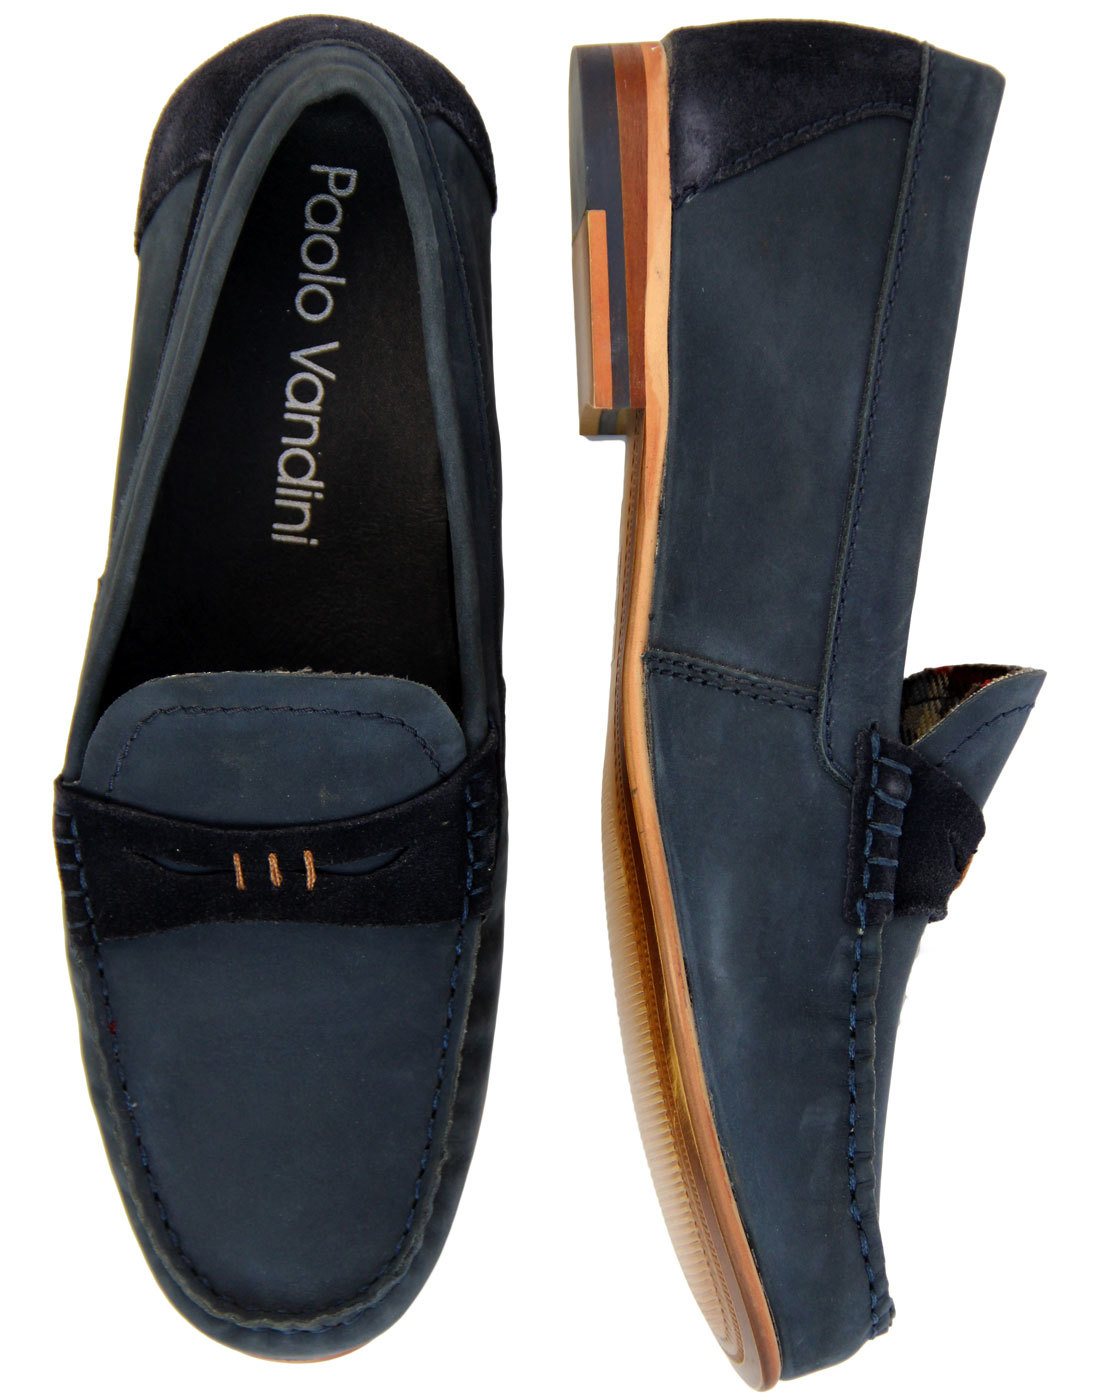 Rushil PAOLO VANDINI 60s Mod Nubuck Penny Loafers